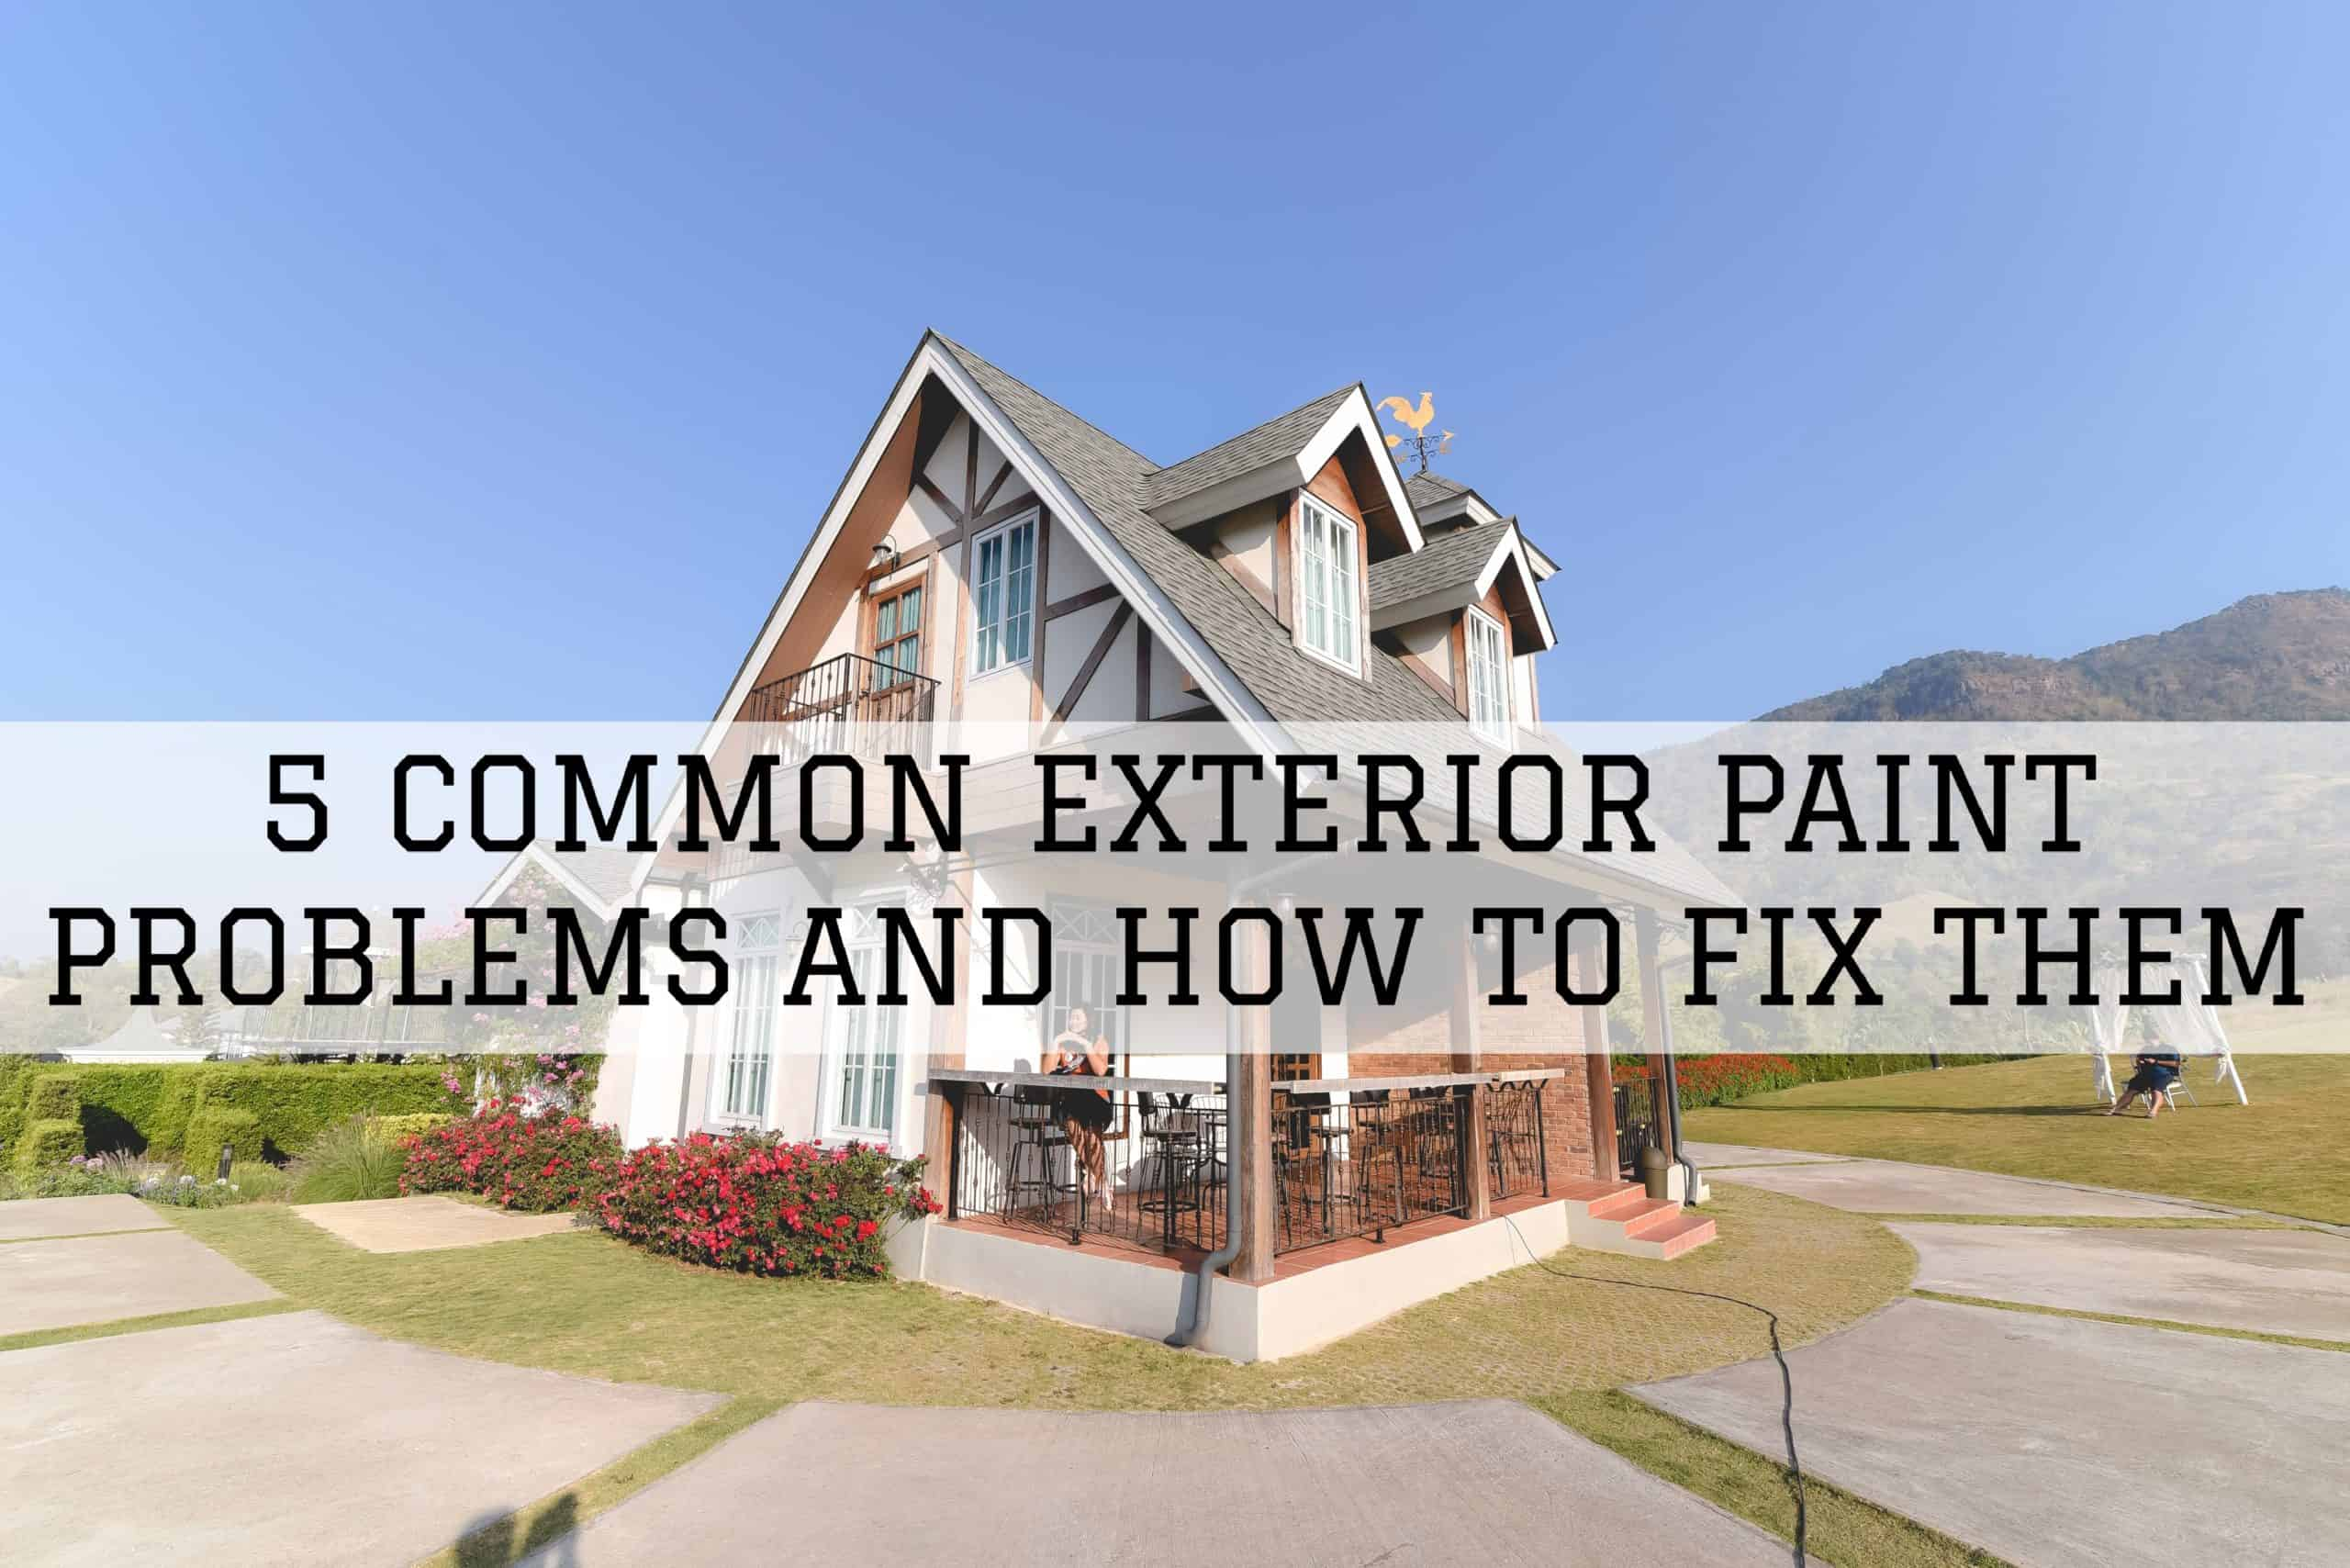 2020-01-17 Brush and Roll Painting Omaha NE Exterior Paint Problems